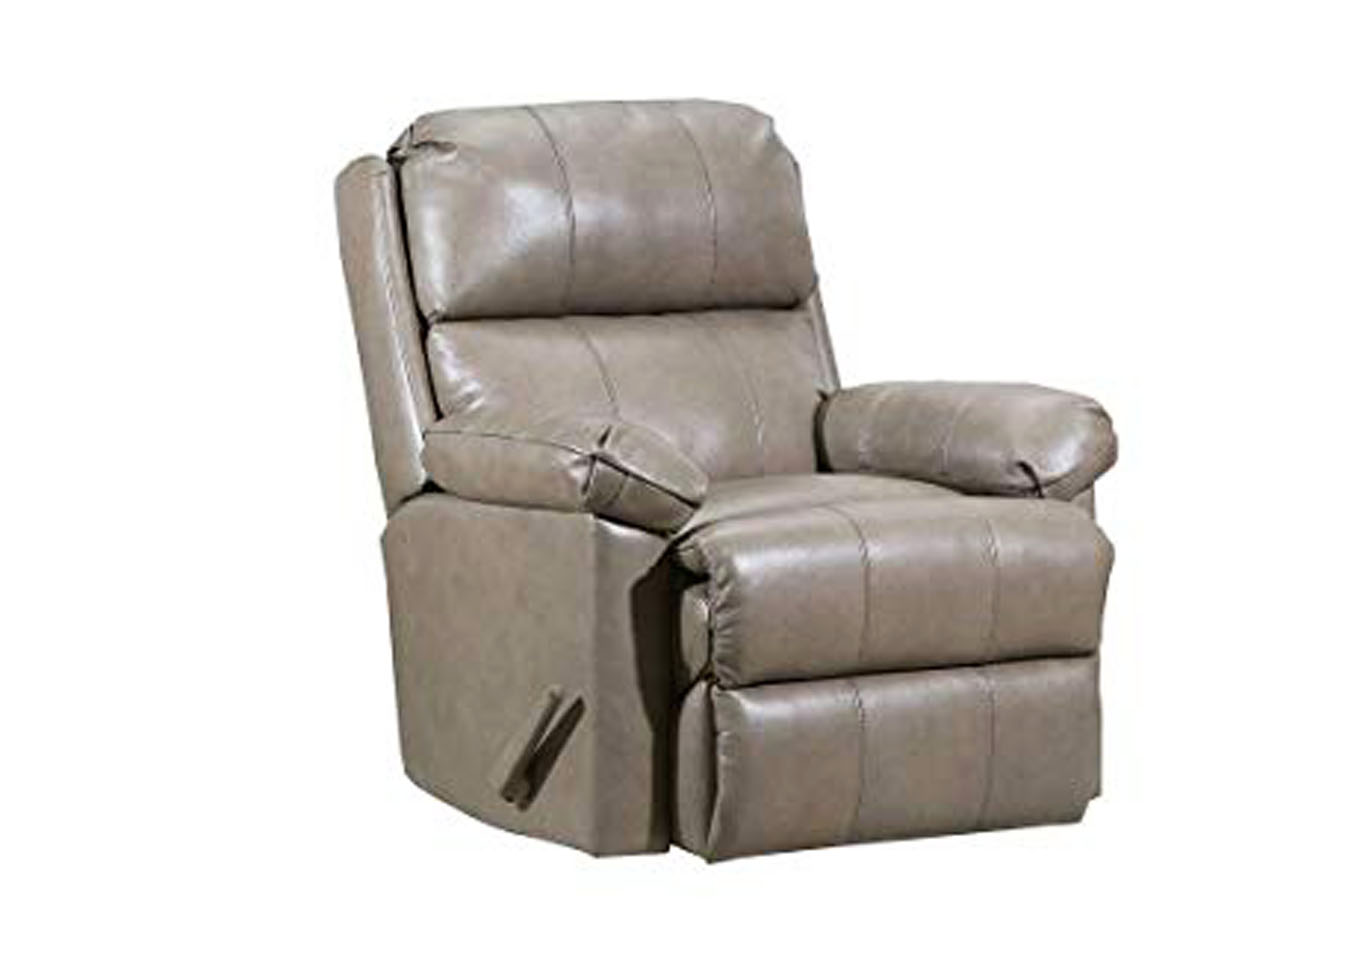 Lane Home Furnishings Mindy Soft Touch Rocker Recliner Taupe,Instore